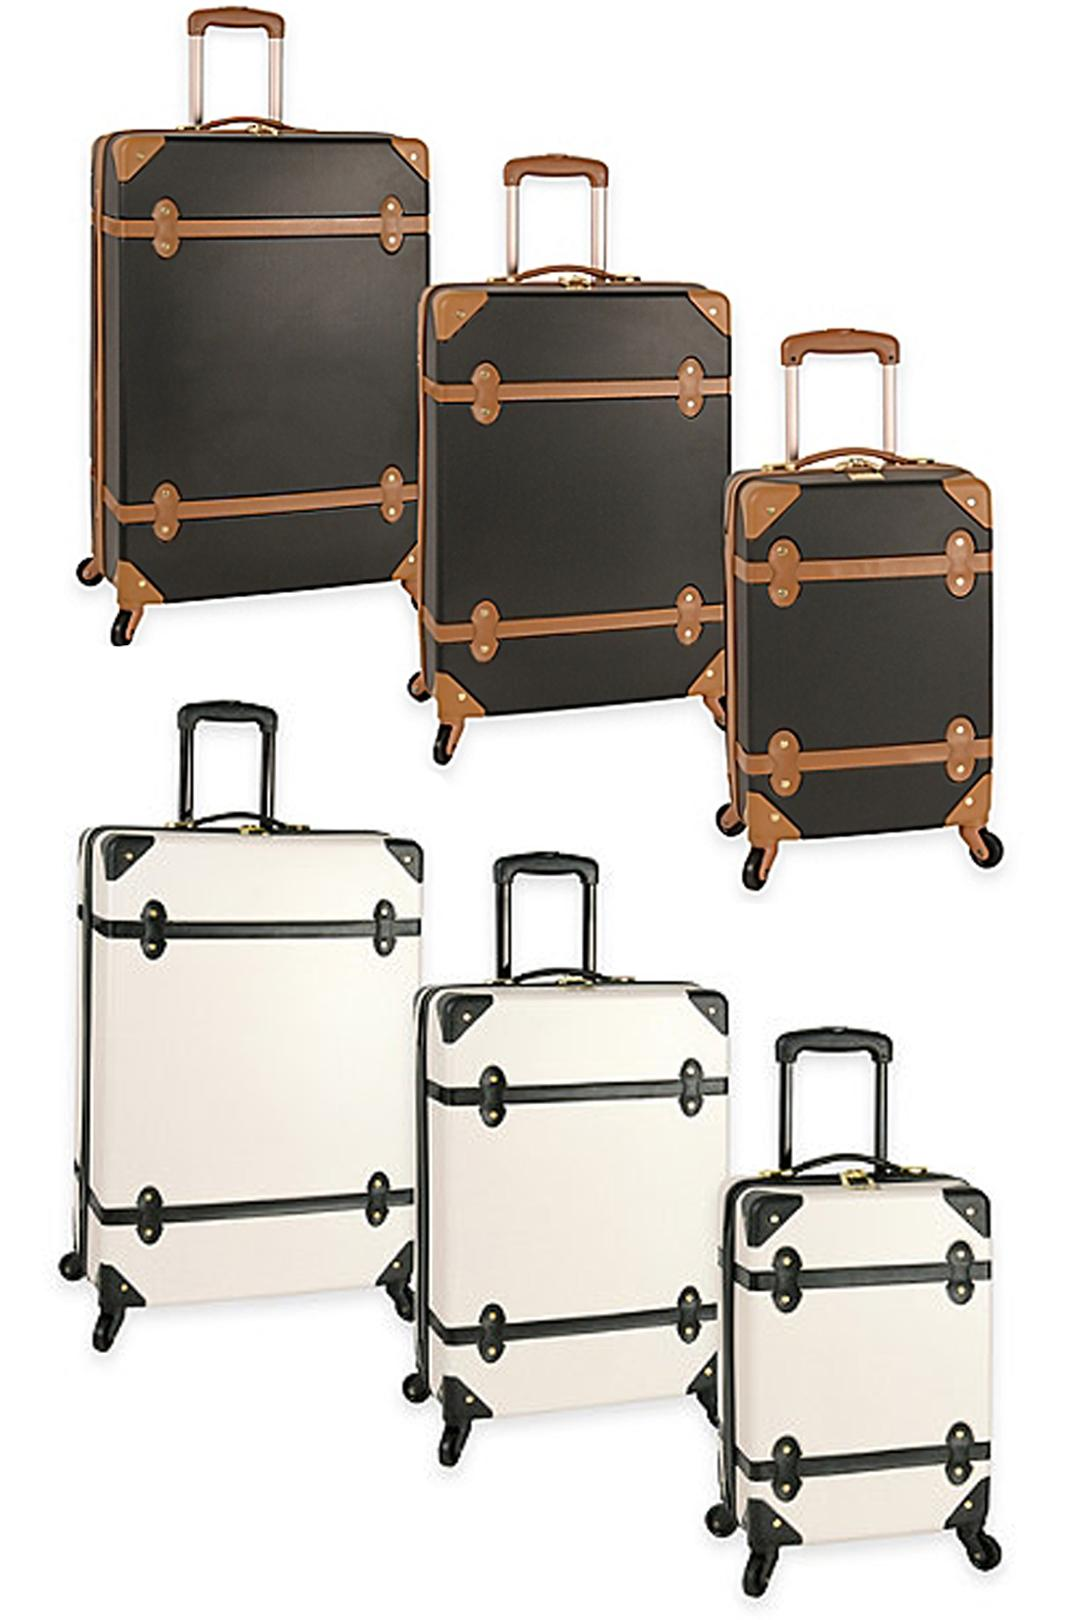 Where to Get this DVF Luggage for More Than 80% Off - Economy of Style